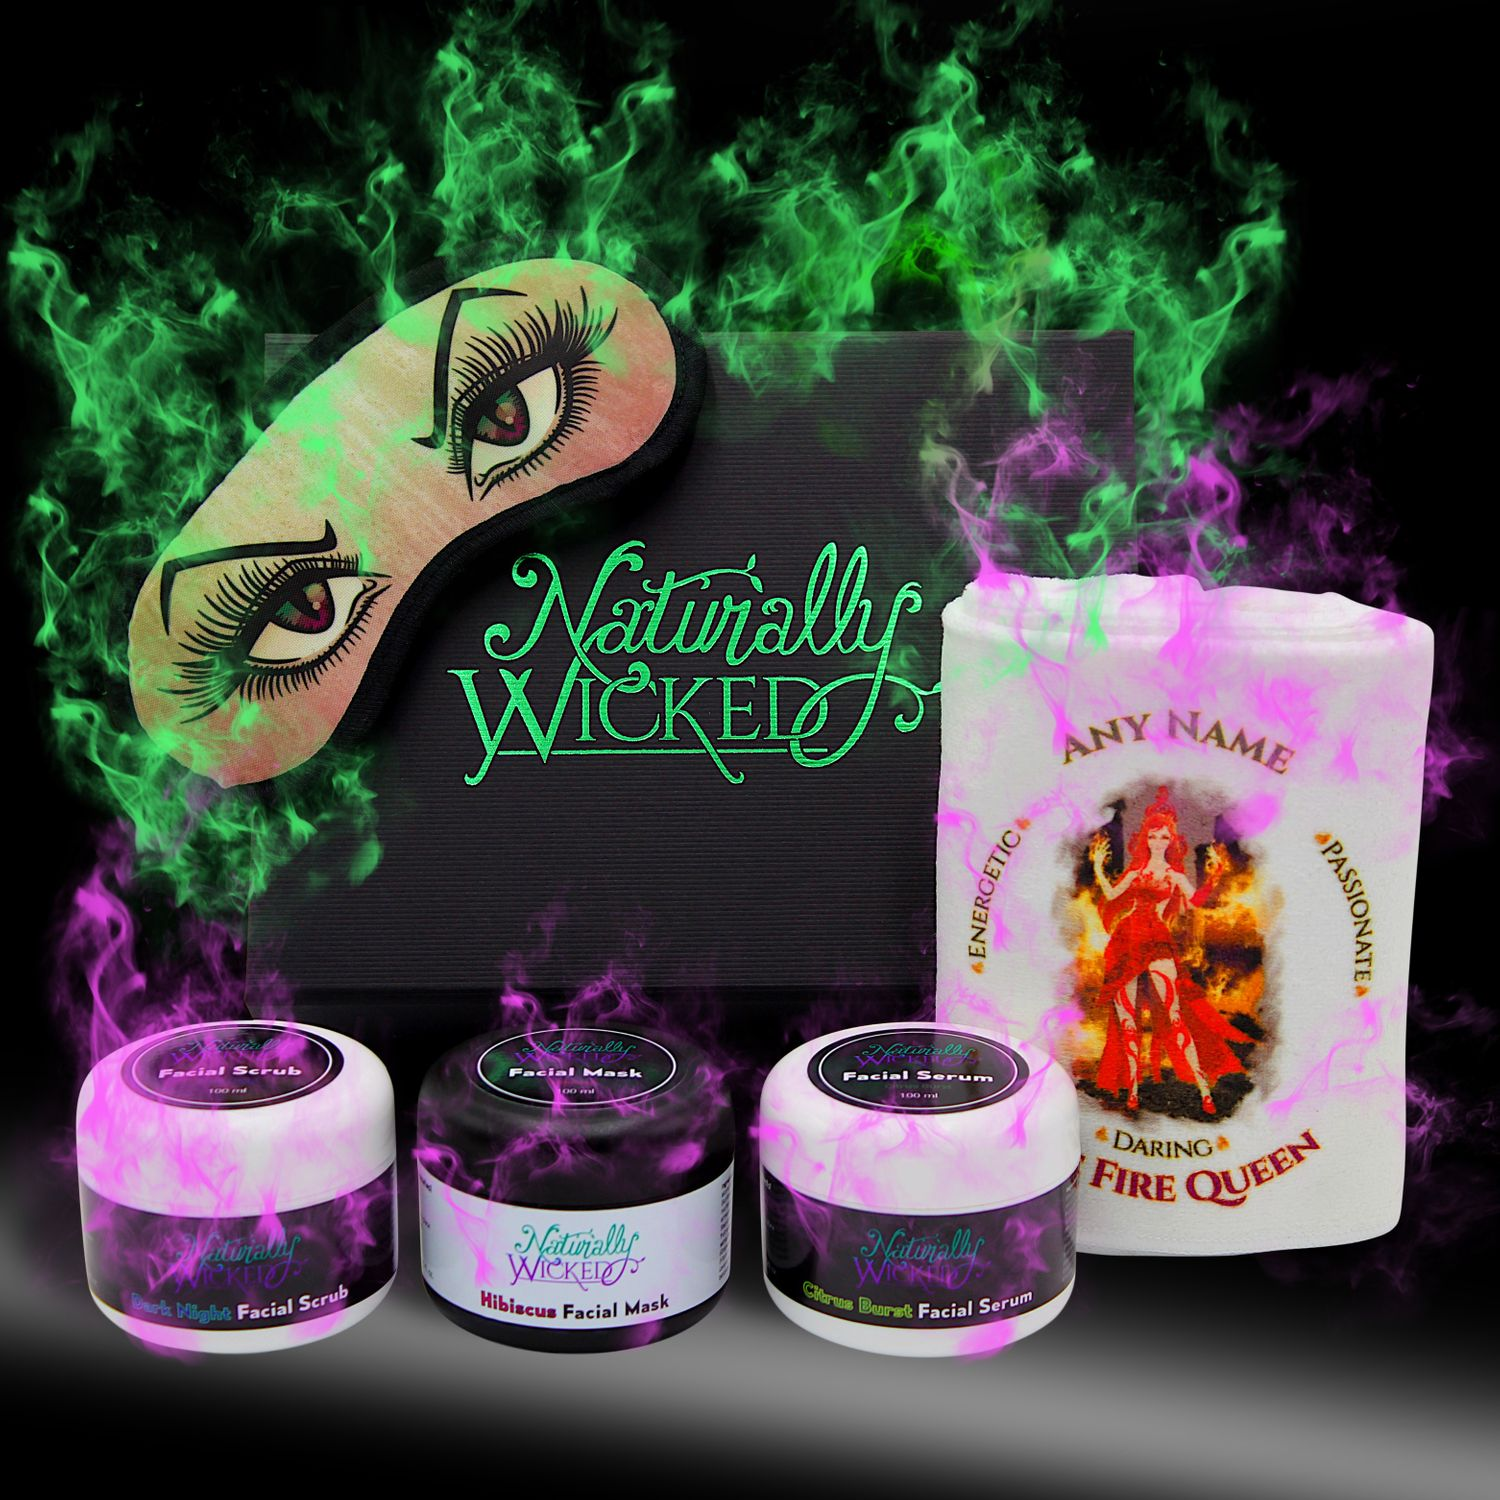 Naturally Wicked Deluxe Facial Kit Surrounded By Green & Purple Mysterious Smoke